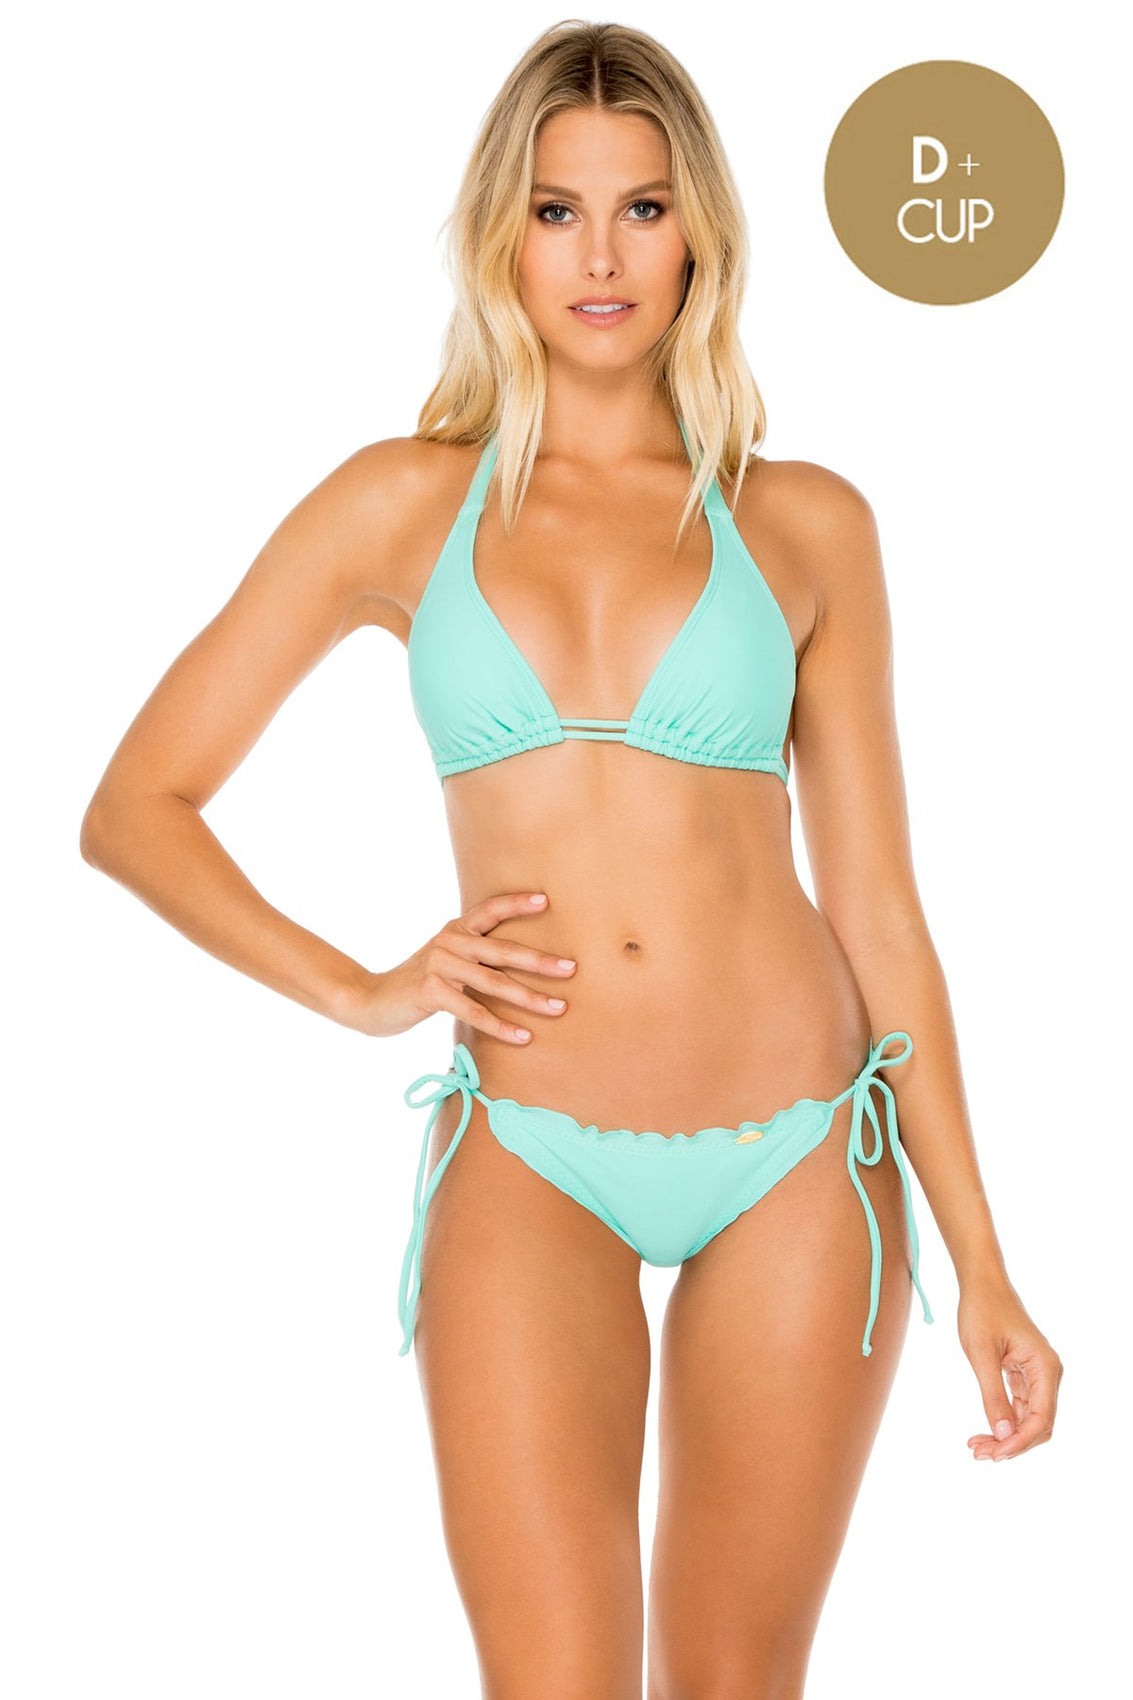 COSITA BUENA - Halter Triangle Top & Wavey Ruched Back Brazilian Tie Side Bottom • Agua Dulce (1609274720358)